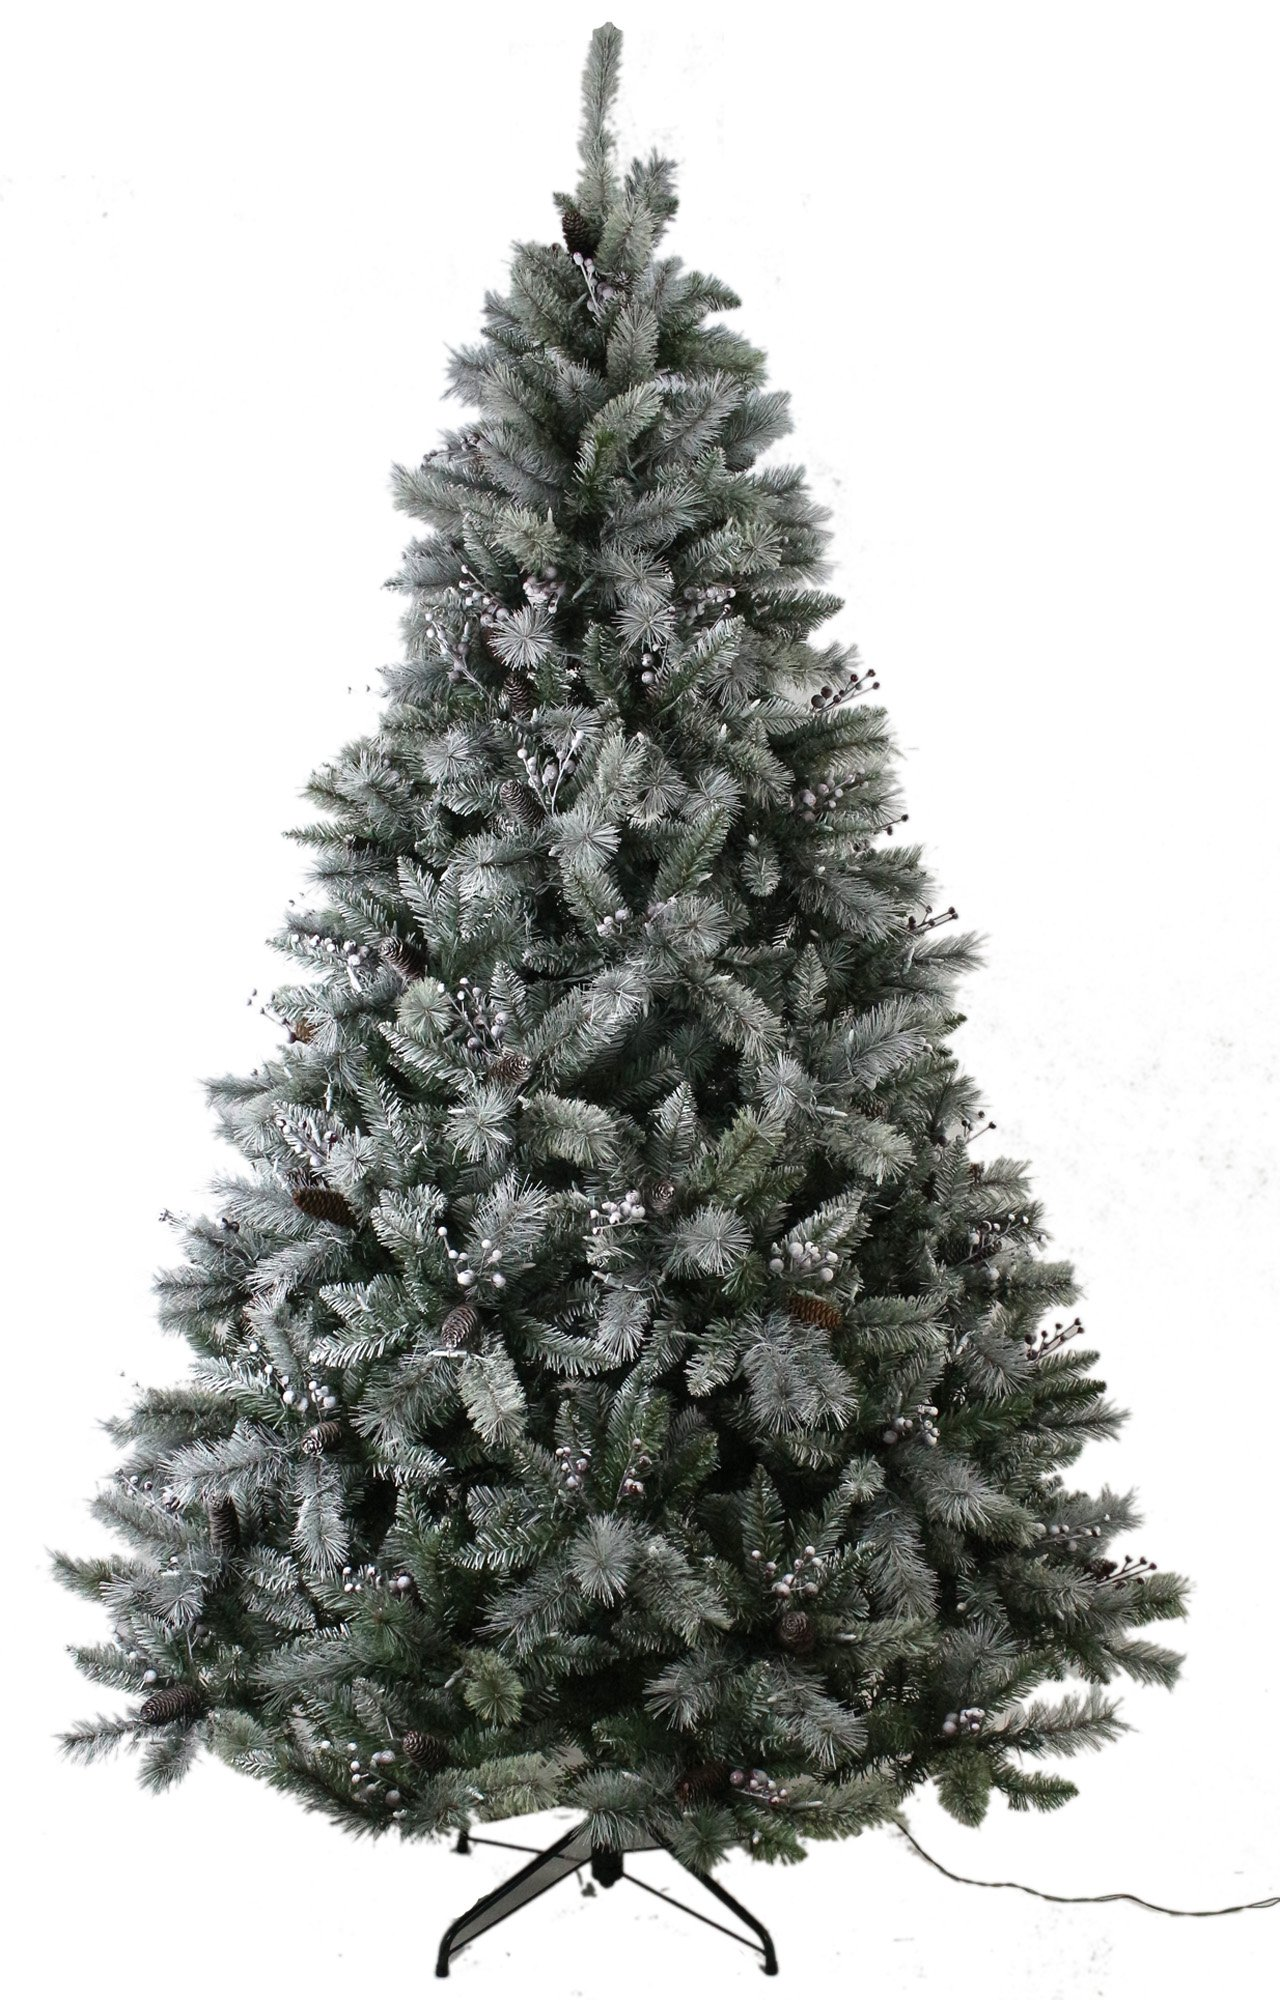 ABUSA Christmas Trees 9 ft Prelit Snowy Everest Needles Pine Cones and Berries Faux Xmas Tree with 1000 LED Lights 2300 Branch Tips